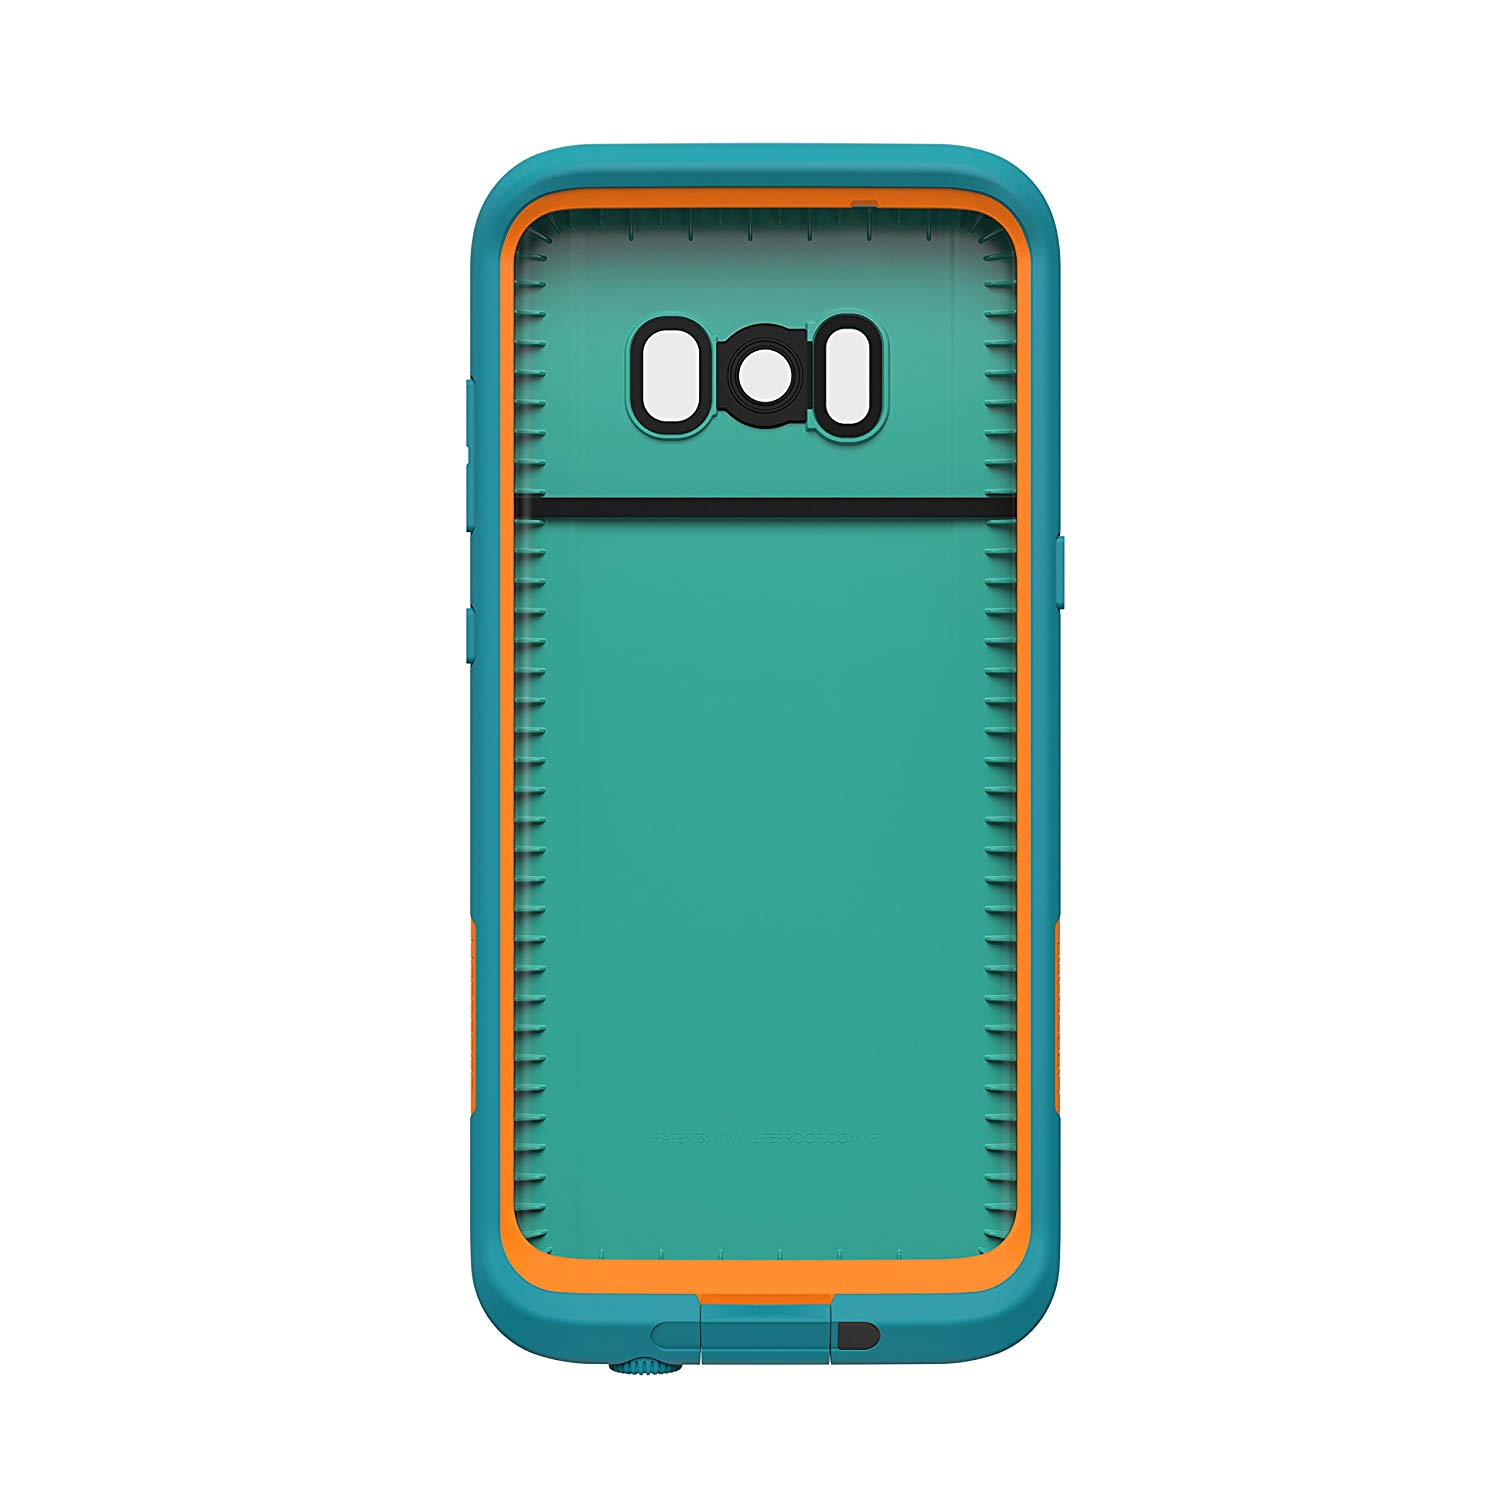 separation shoes 5f9ca 0bc92 LifeProof Fre Waterproof Case for Samsung Galaxy S8 - Sunset Bay (LIGHT  TEAL/MAUI BLUE/MANGO TANGO)